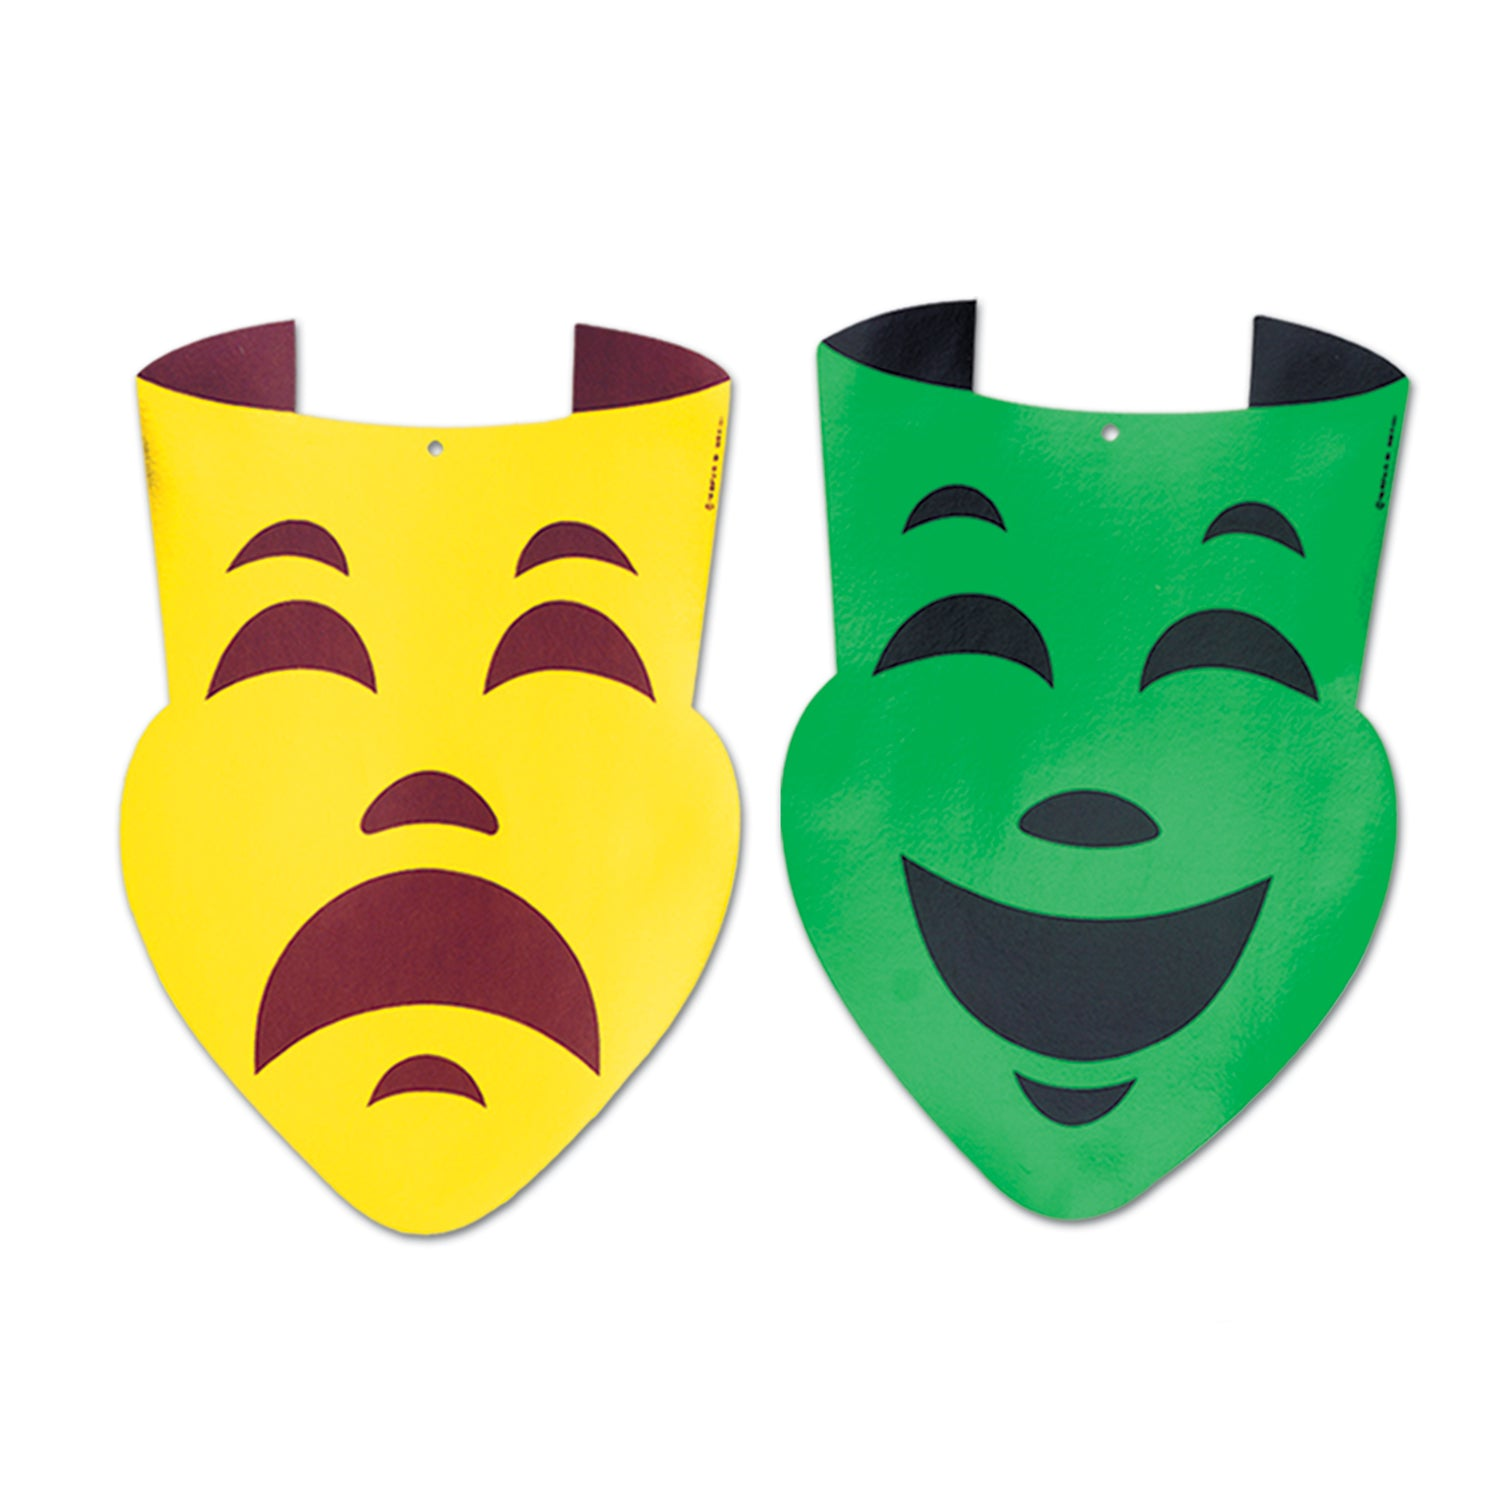 Packaged Foil Comedy & Tragedy Face Cutouts (2/Pkg) by Beistle - Mardi Gras Theme Decorations